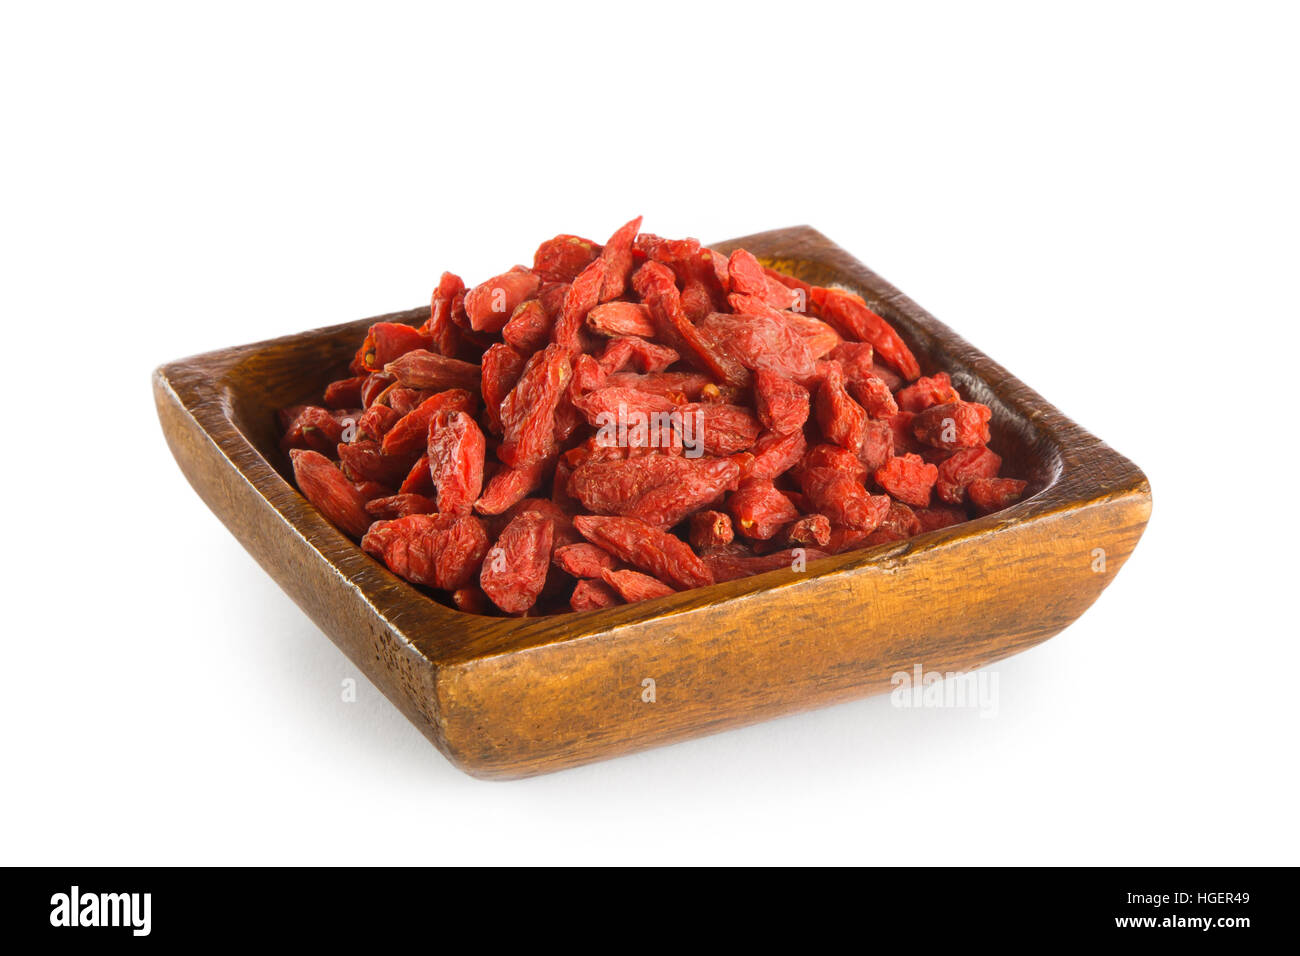 Goji berries in wooden bowl isolated on white background. Superfood - Stock Image